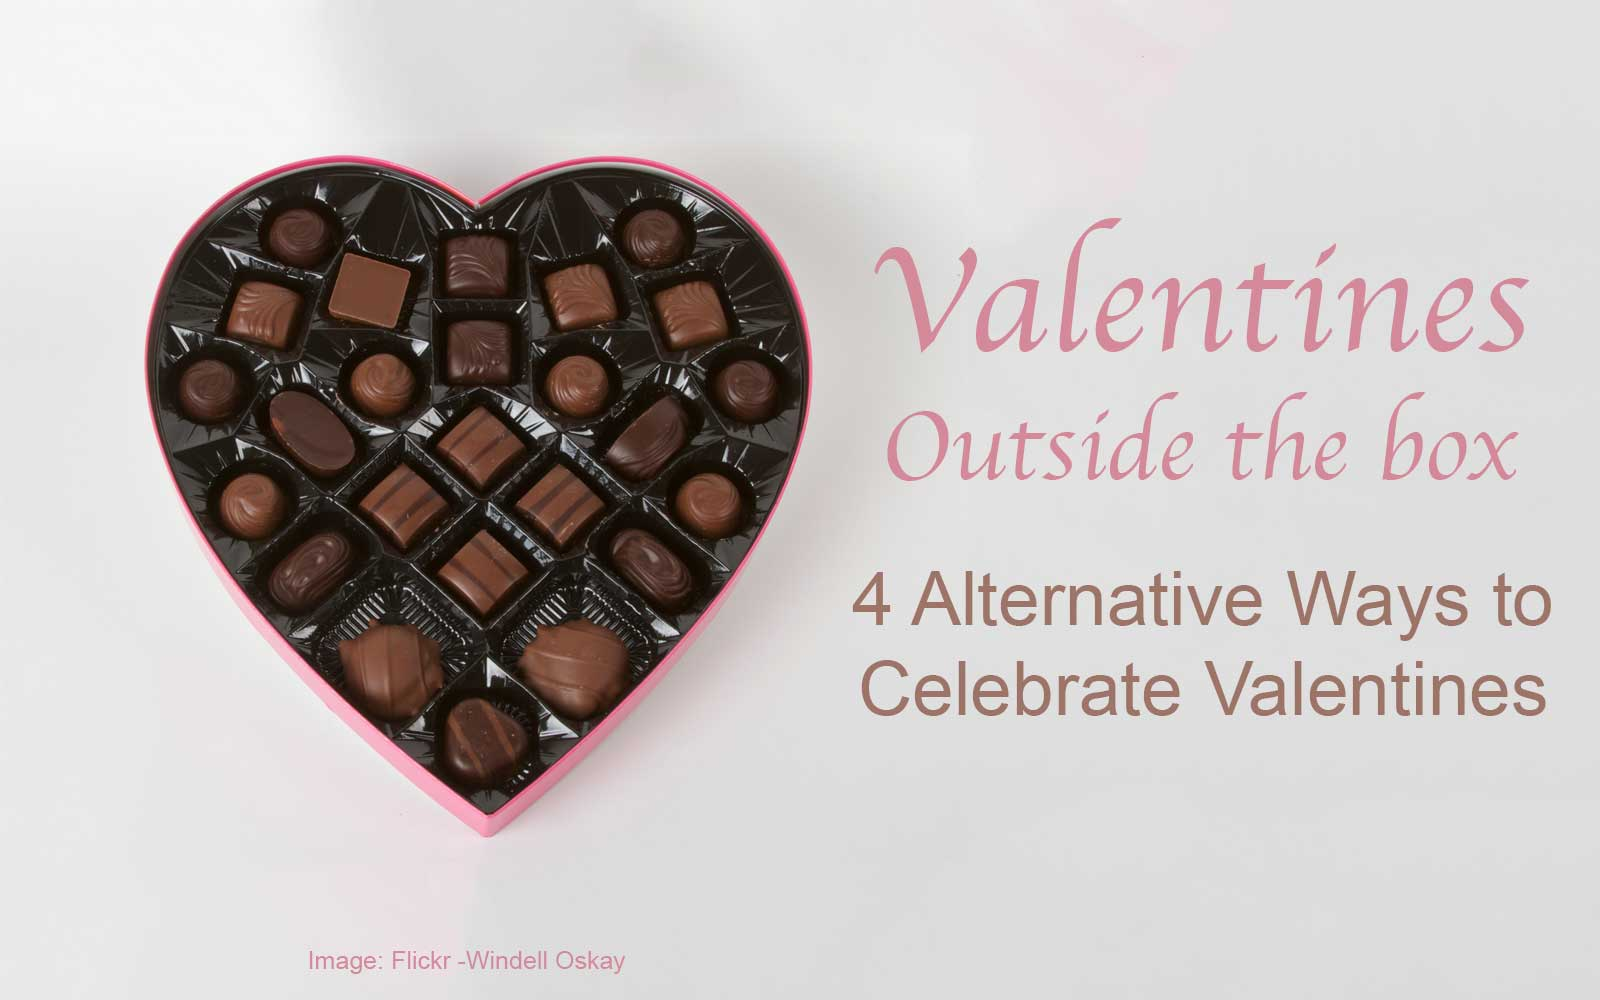 Valentines Day Outside The Box - 4 Alternative Ways to Celebrate (Heart shaped box with text next to it.)